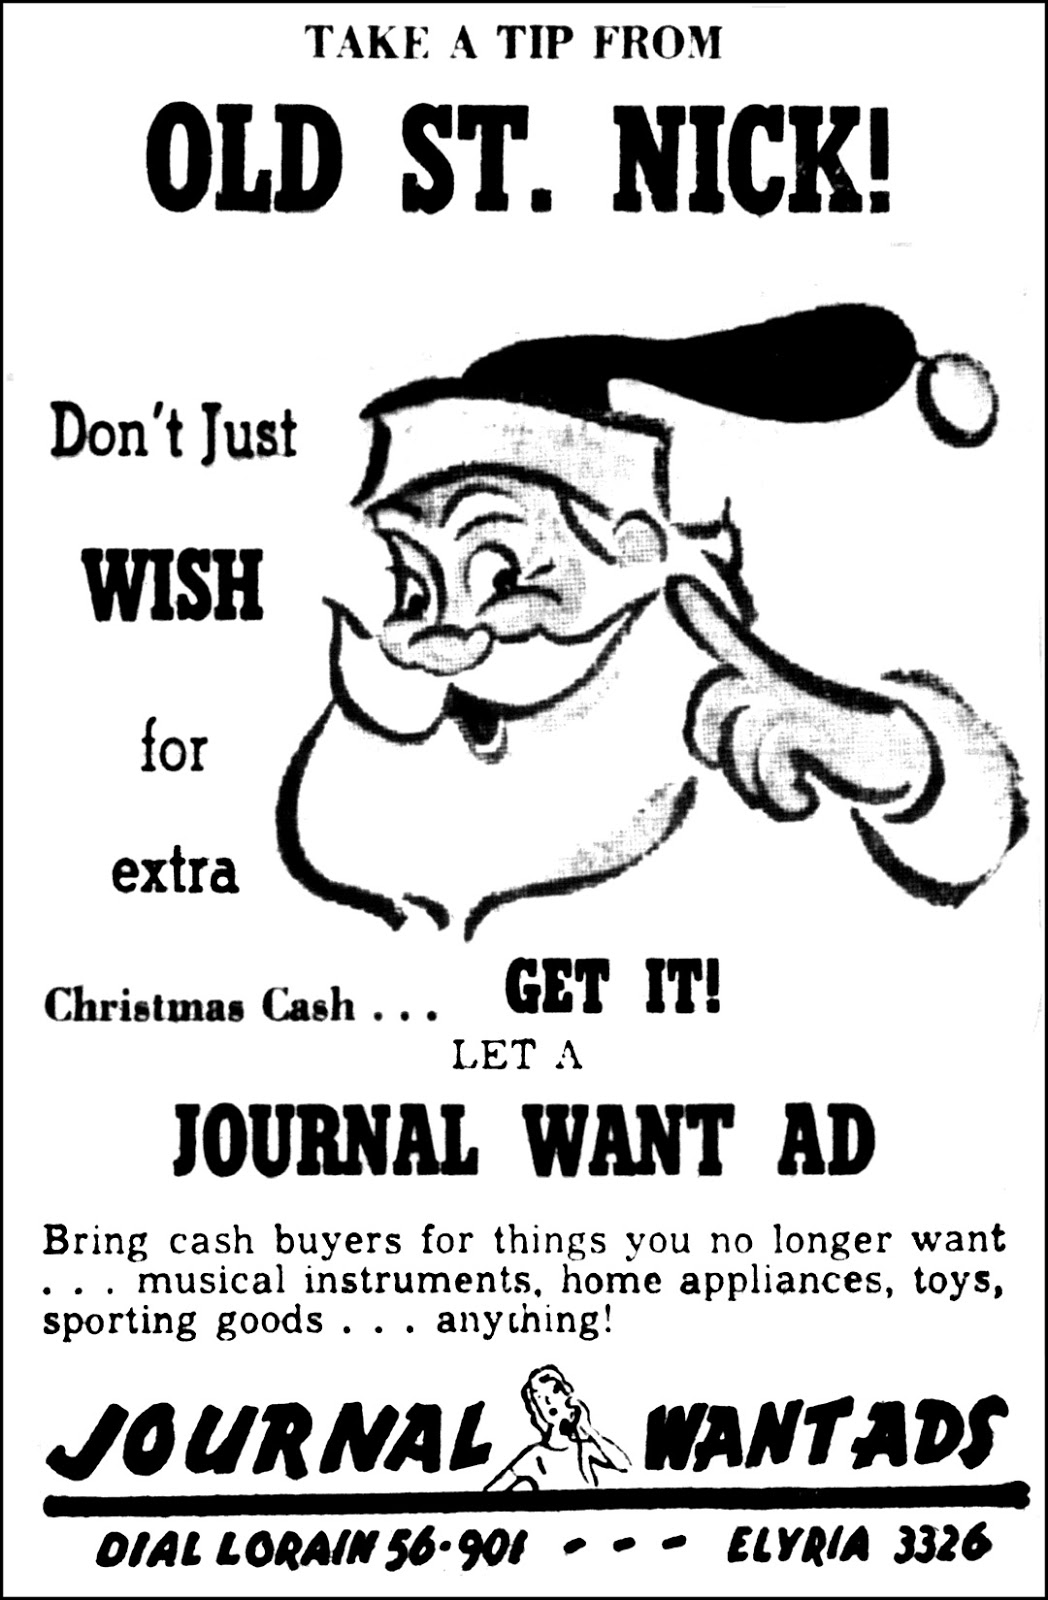 brady s bunch of lorain county nostalgia 2012 Axe Advertisements december 1955 lorain journal ad